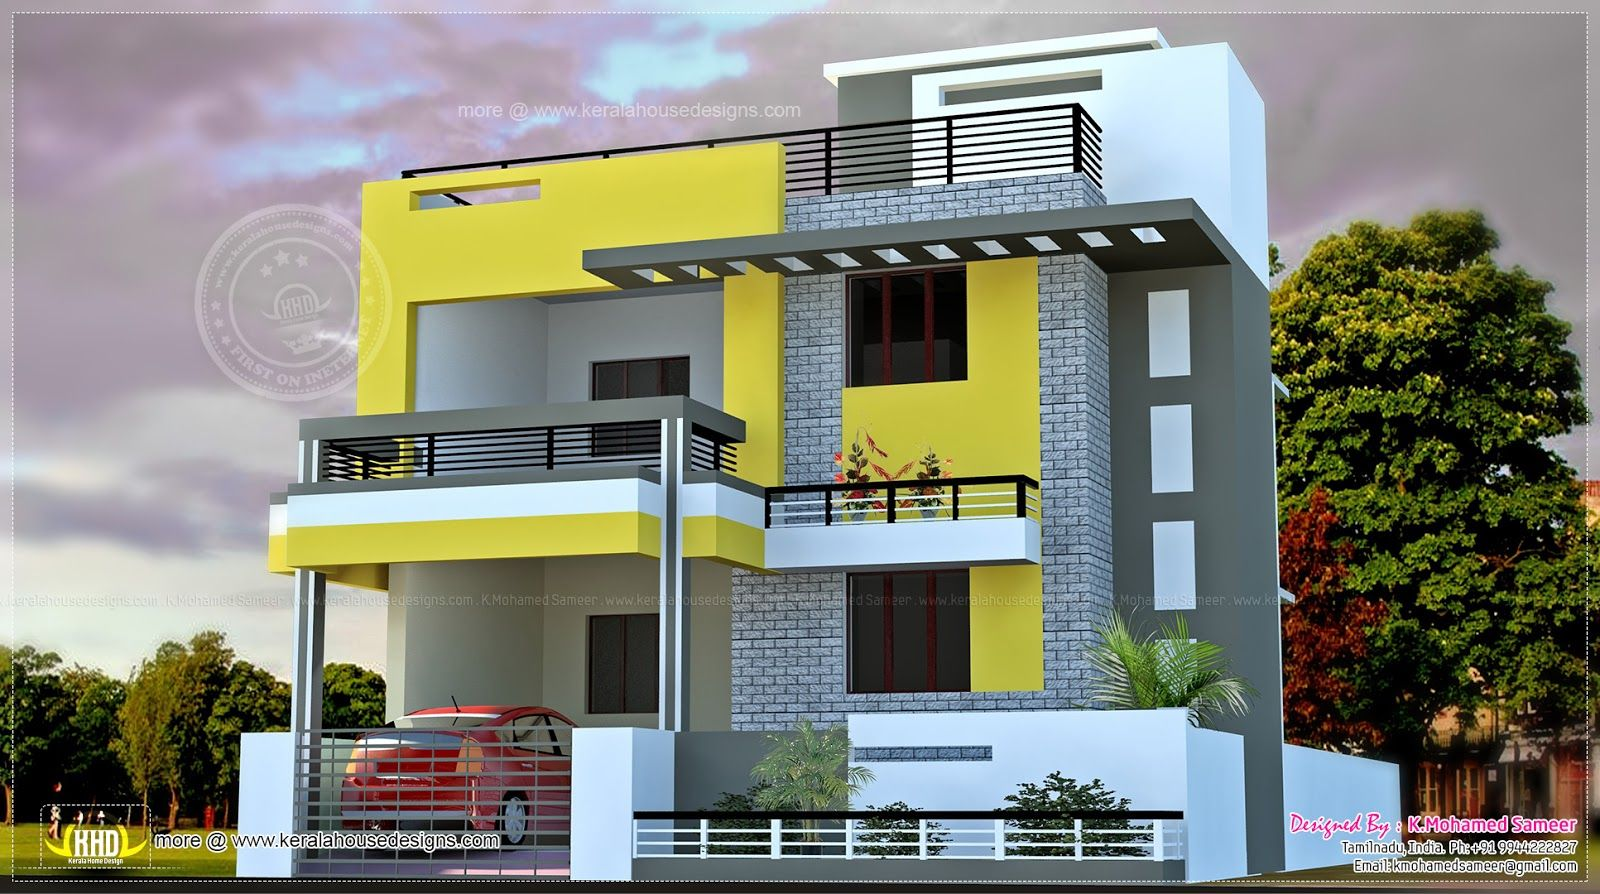 Front Elevation Of G 2 Building : Elevations of residential buildings in indian photo